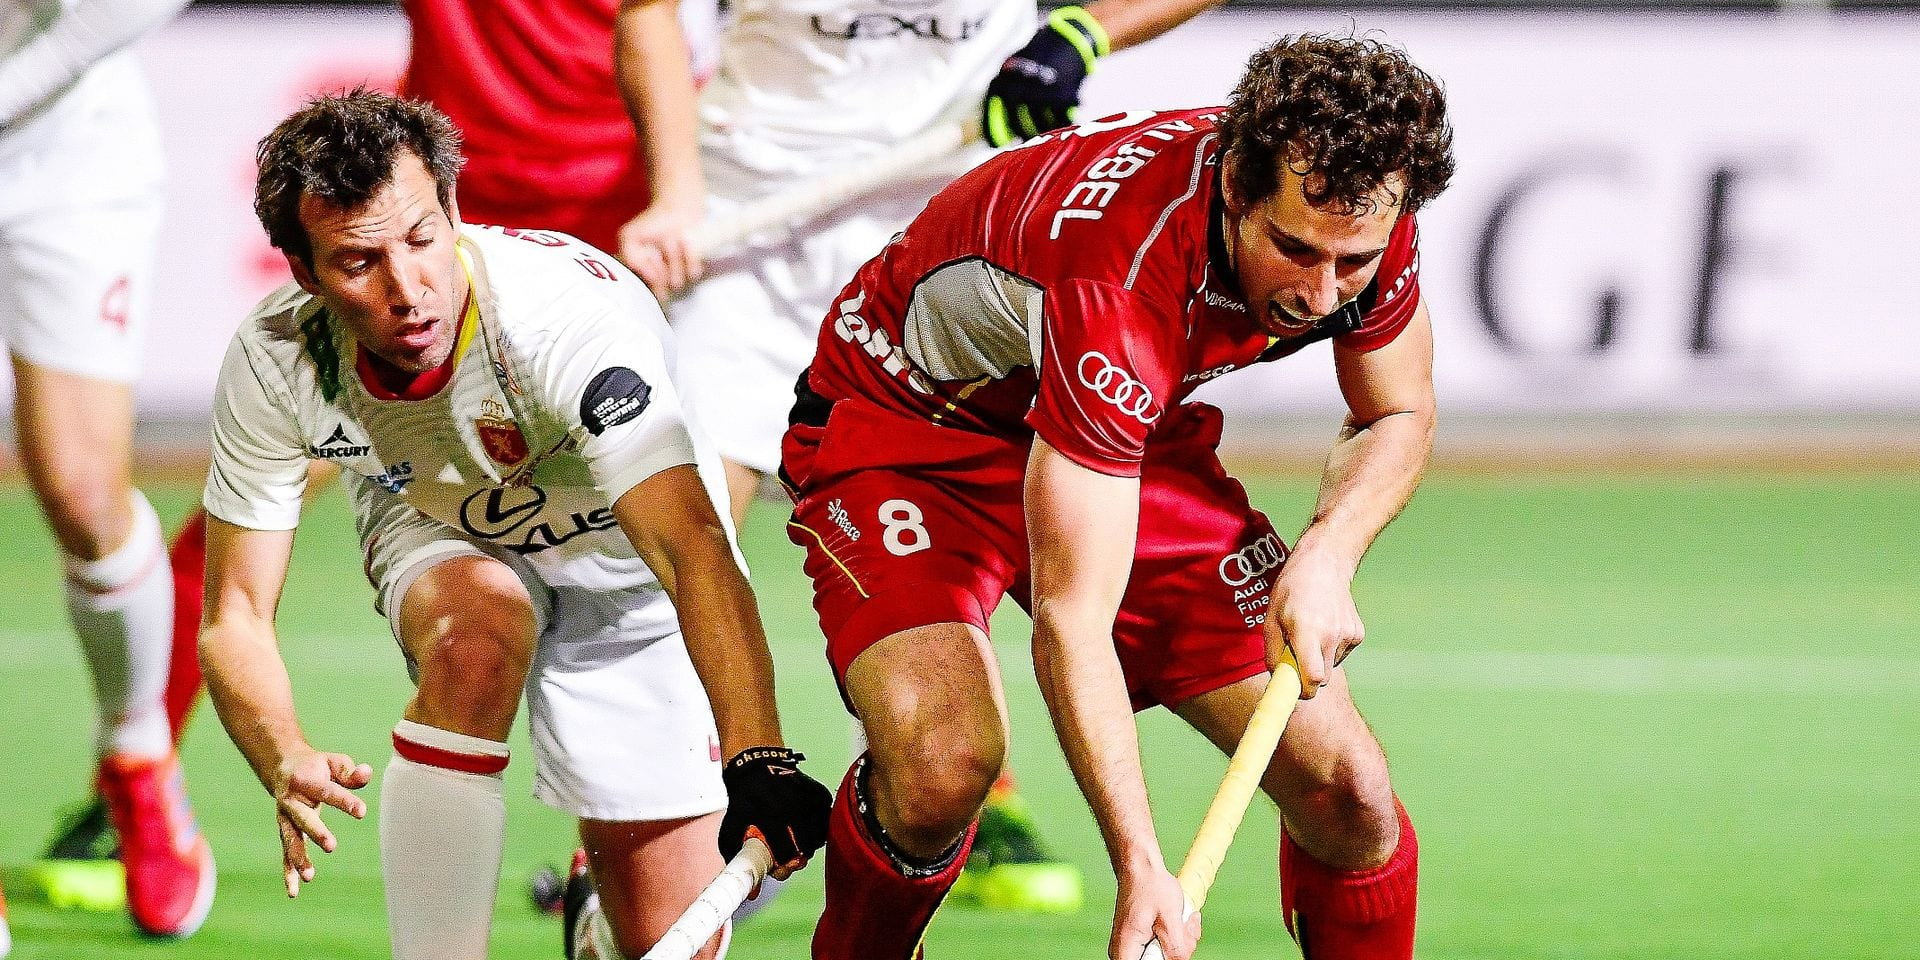 Belgium's Florent van Aubel pictured in action during a field hockey game between Belgium's national team Red Lions and Spain, Wednesday 10 April 2019 in Brussels, game 5/16 of the men's FIH Pro League competition. BELGA PHOTO LAURIE DIEFFEMBACQ